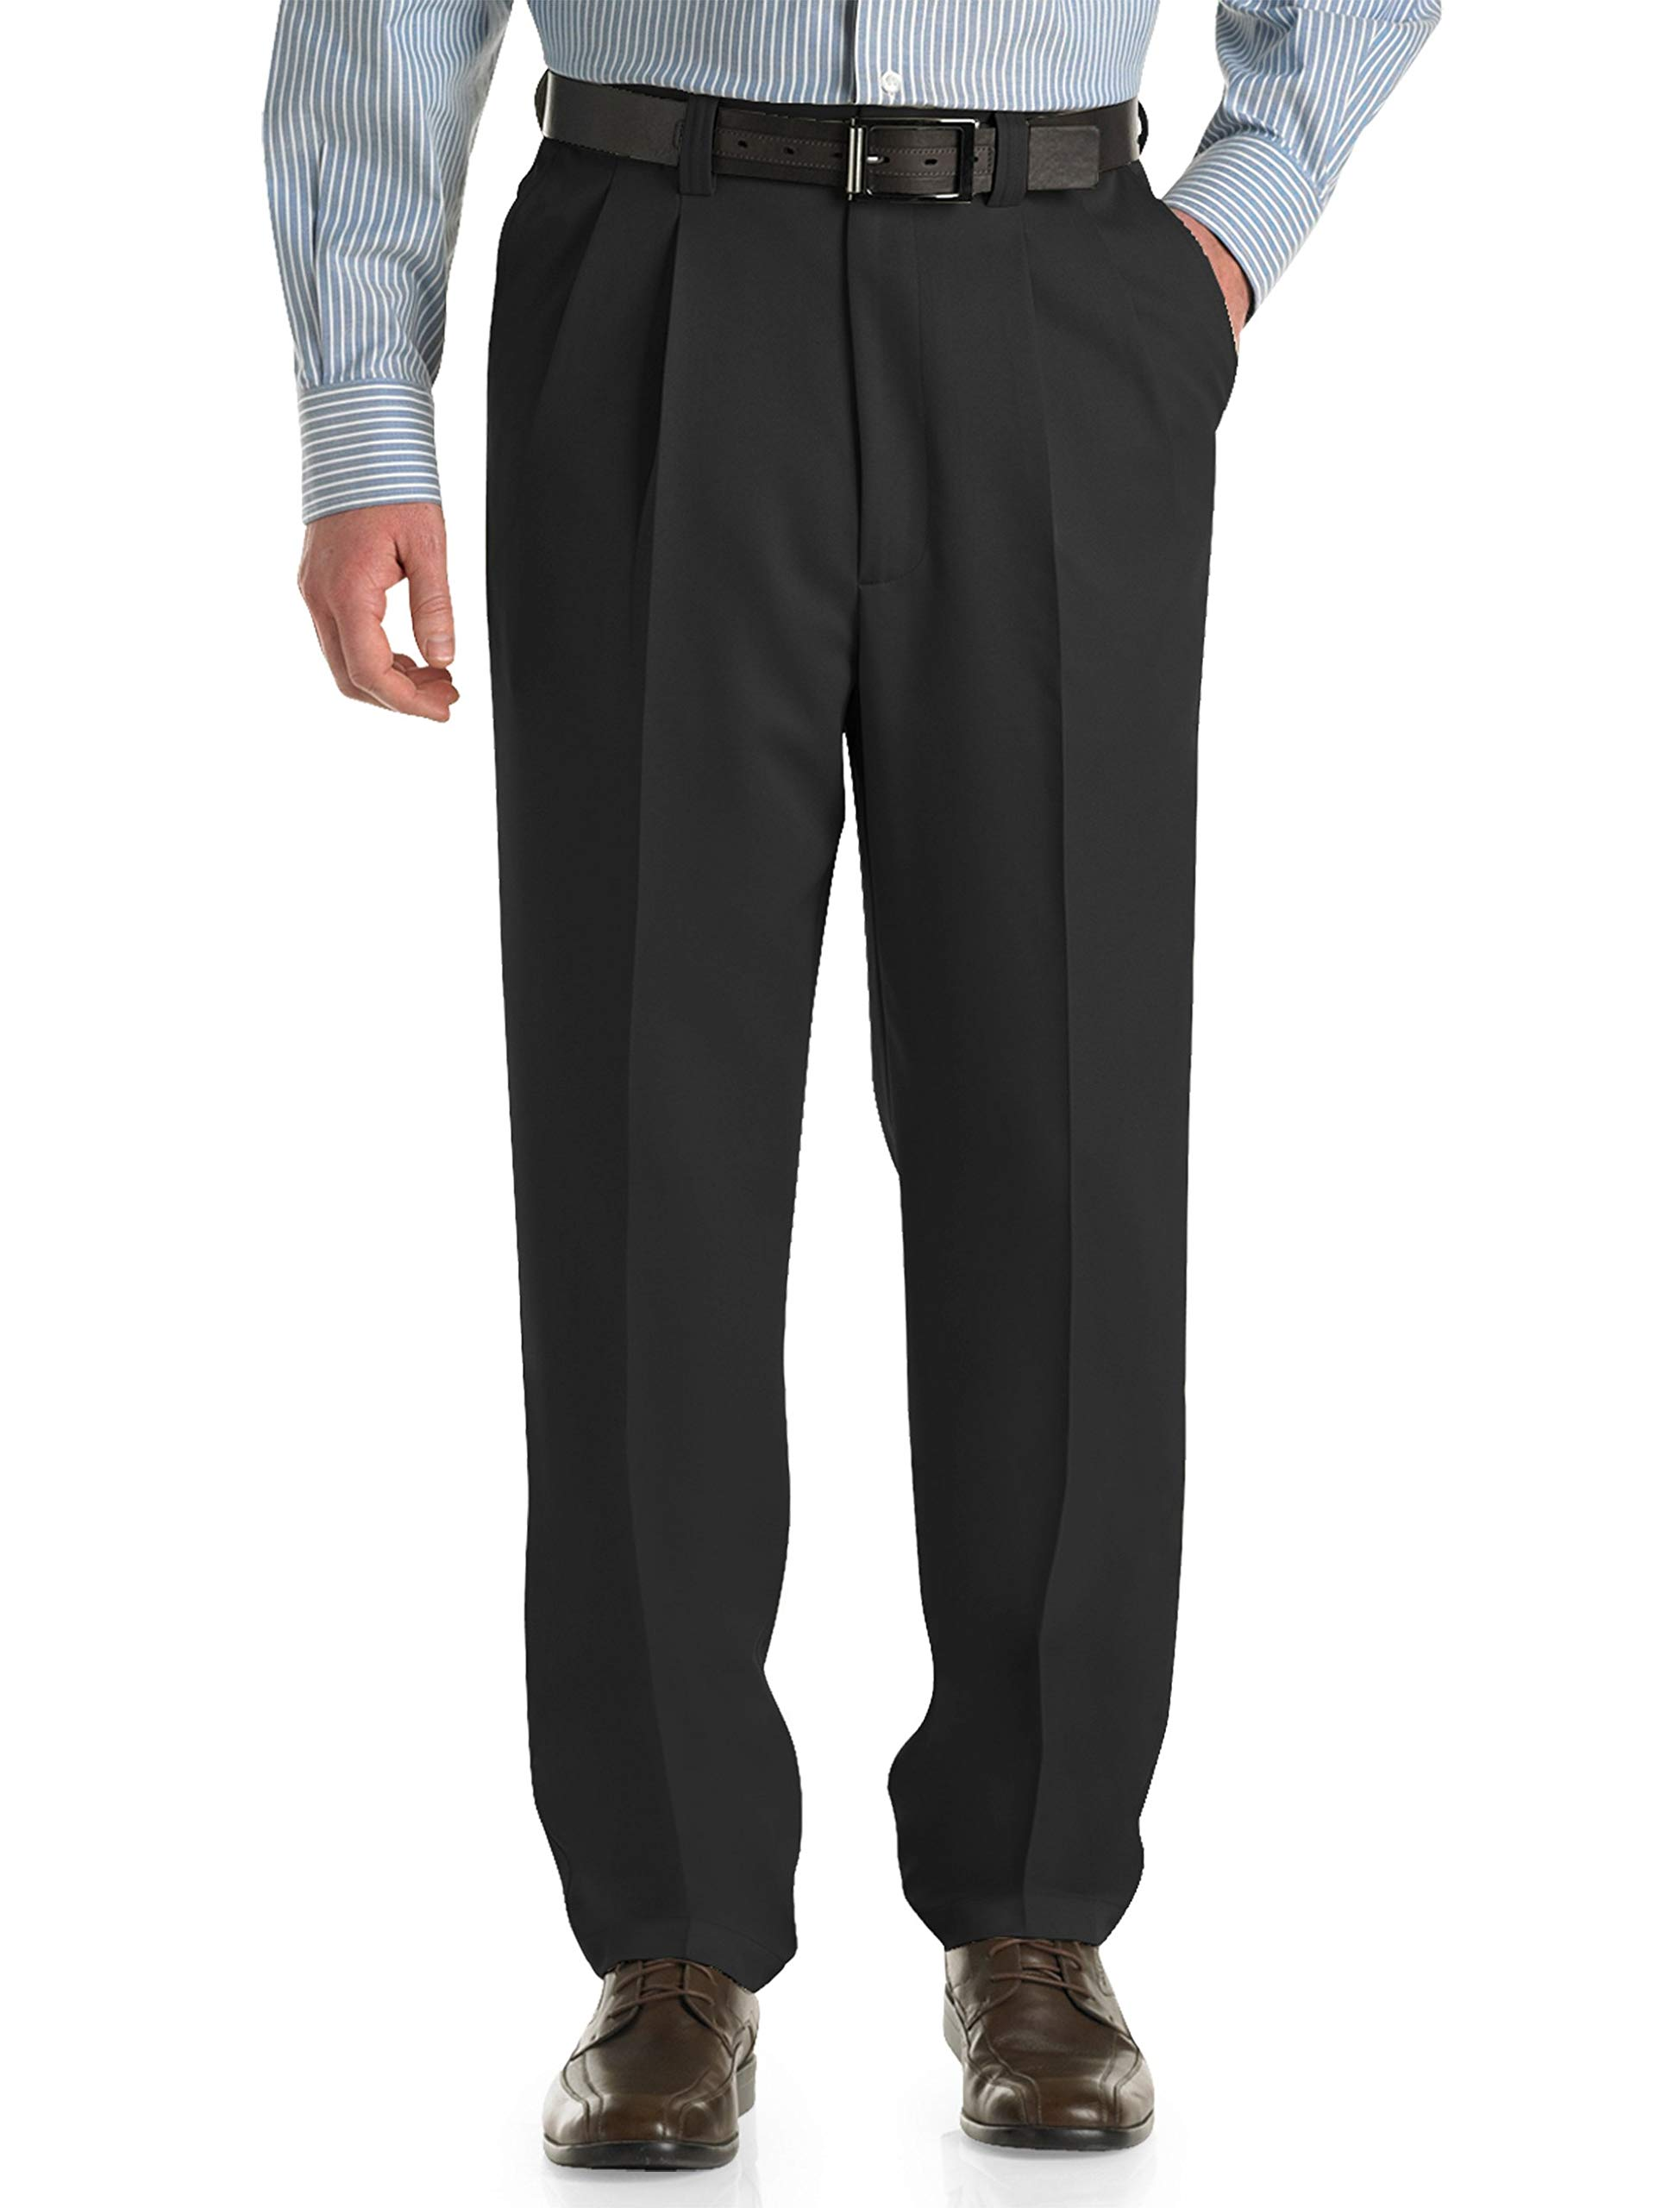 Oak Hill by DXL Big and Tall Waist-Relaxer Pleated Microfiber Pants